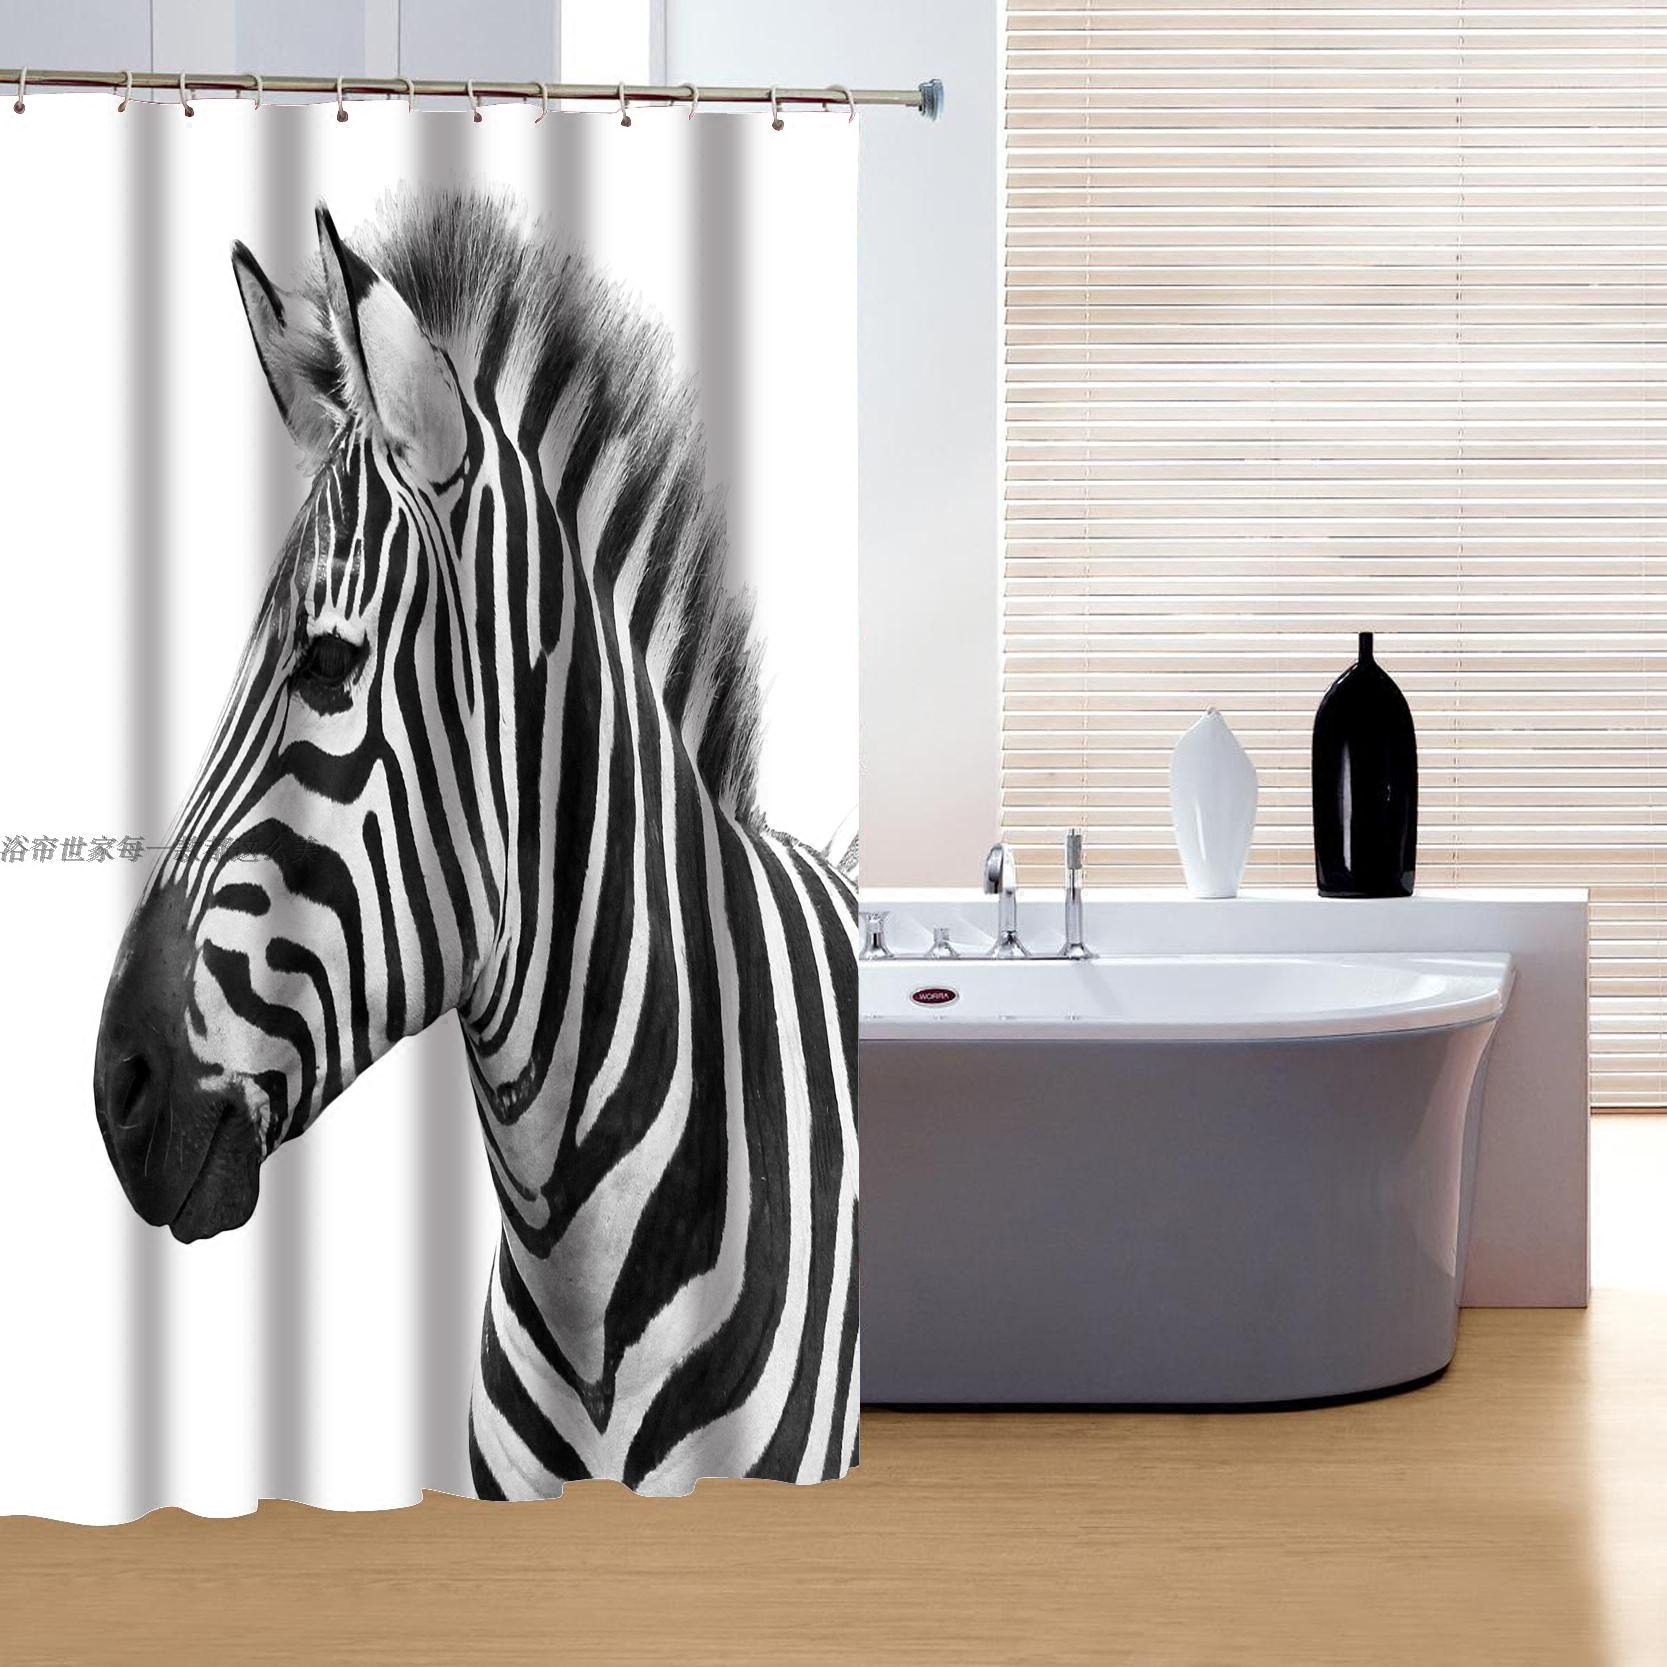 With creative shower curtains white and black creative shower curtain - 3d Zebra Printing Polyester Shower Curtain Waterproof Creative Uniqe Shower Curtains Home Decoration Curtain Free Shipping